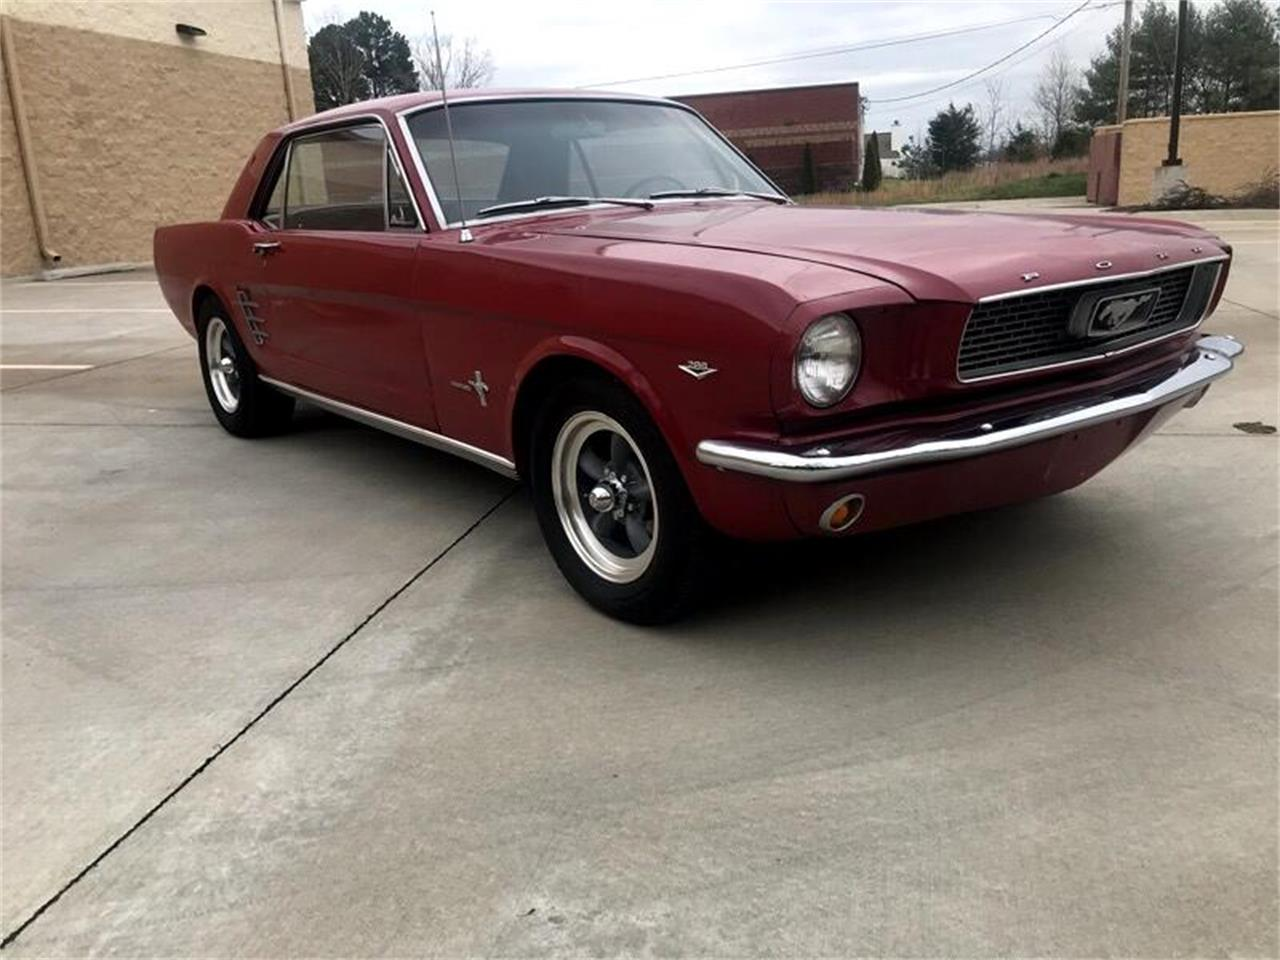 Ford Mustang V8 289 1966 prix tout compris 1966